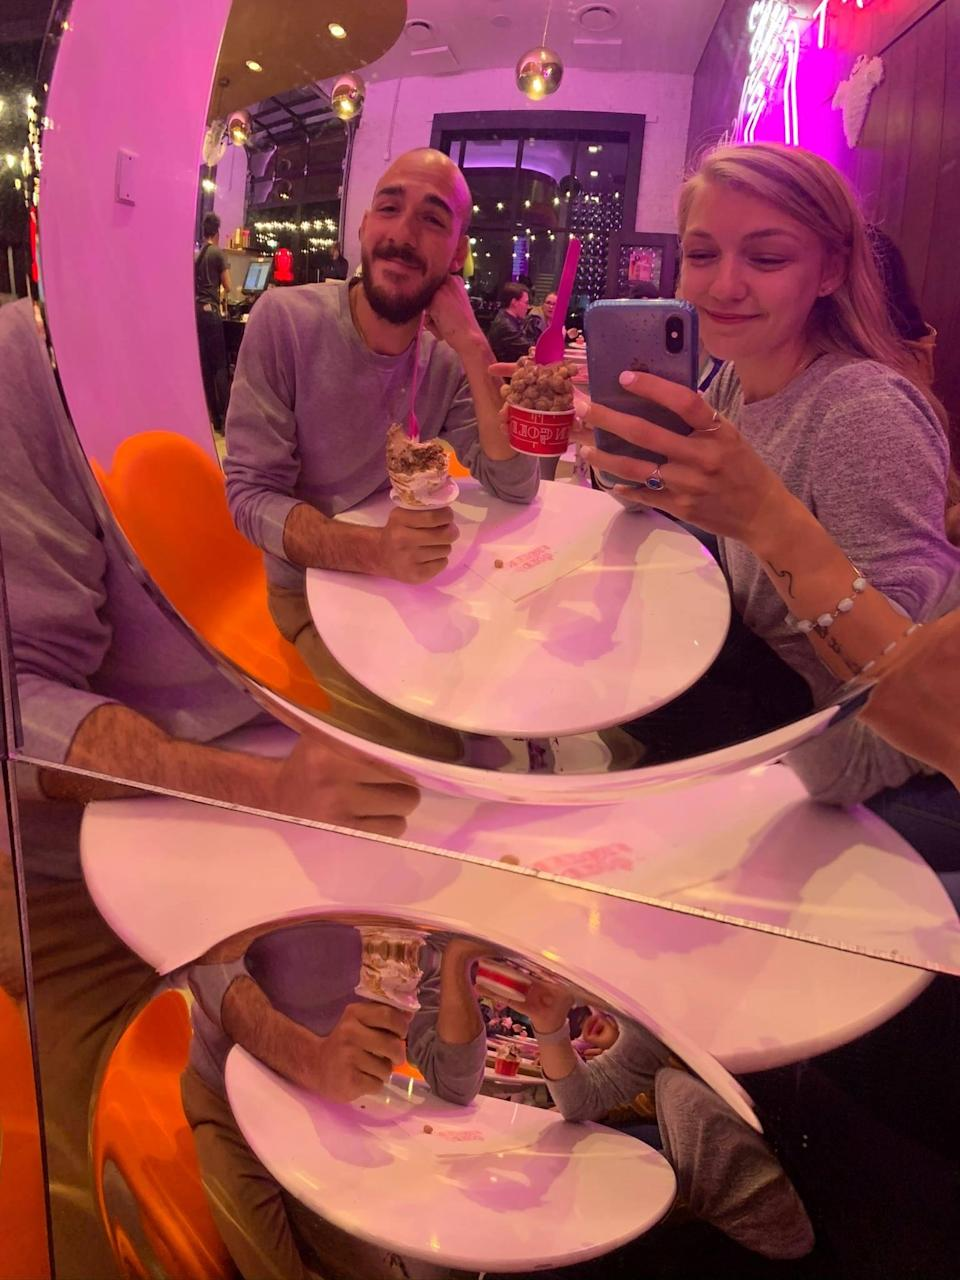 Gabby Petito poses with boyfriend Brian Laundrie at an ice cream parlour. (Find Gabby Facebook page)